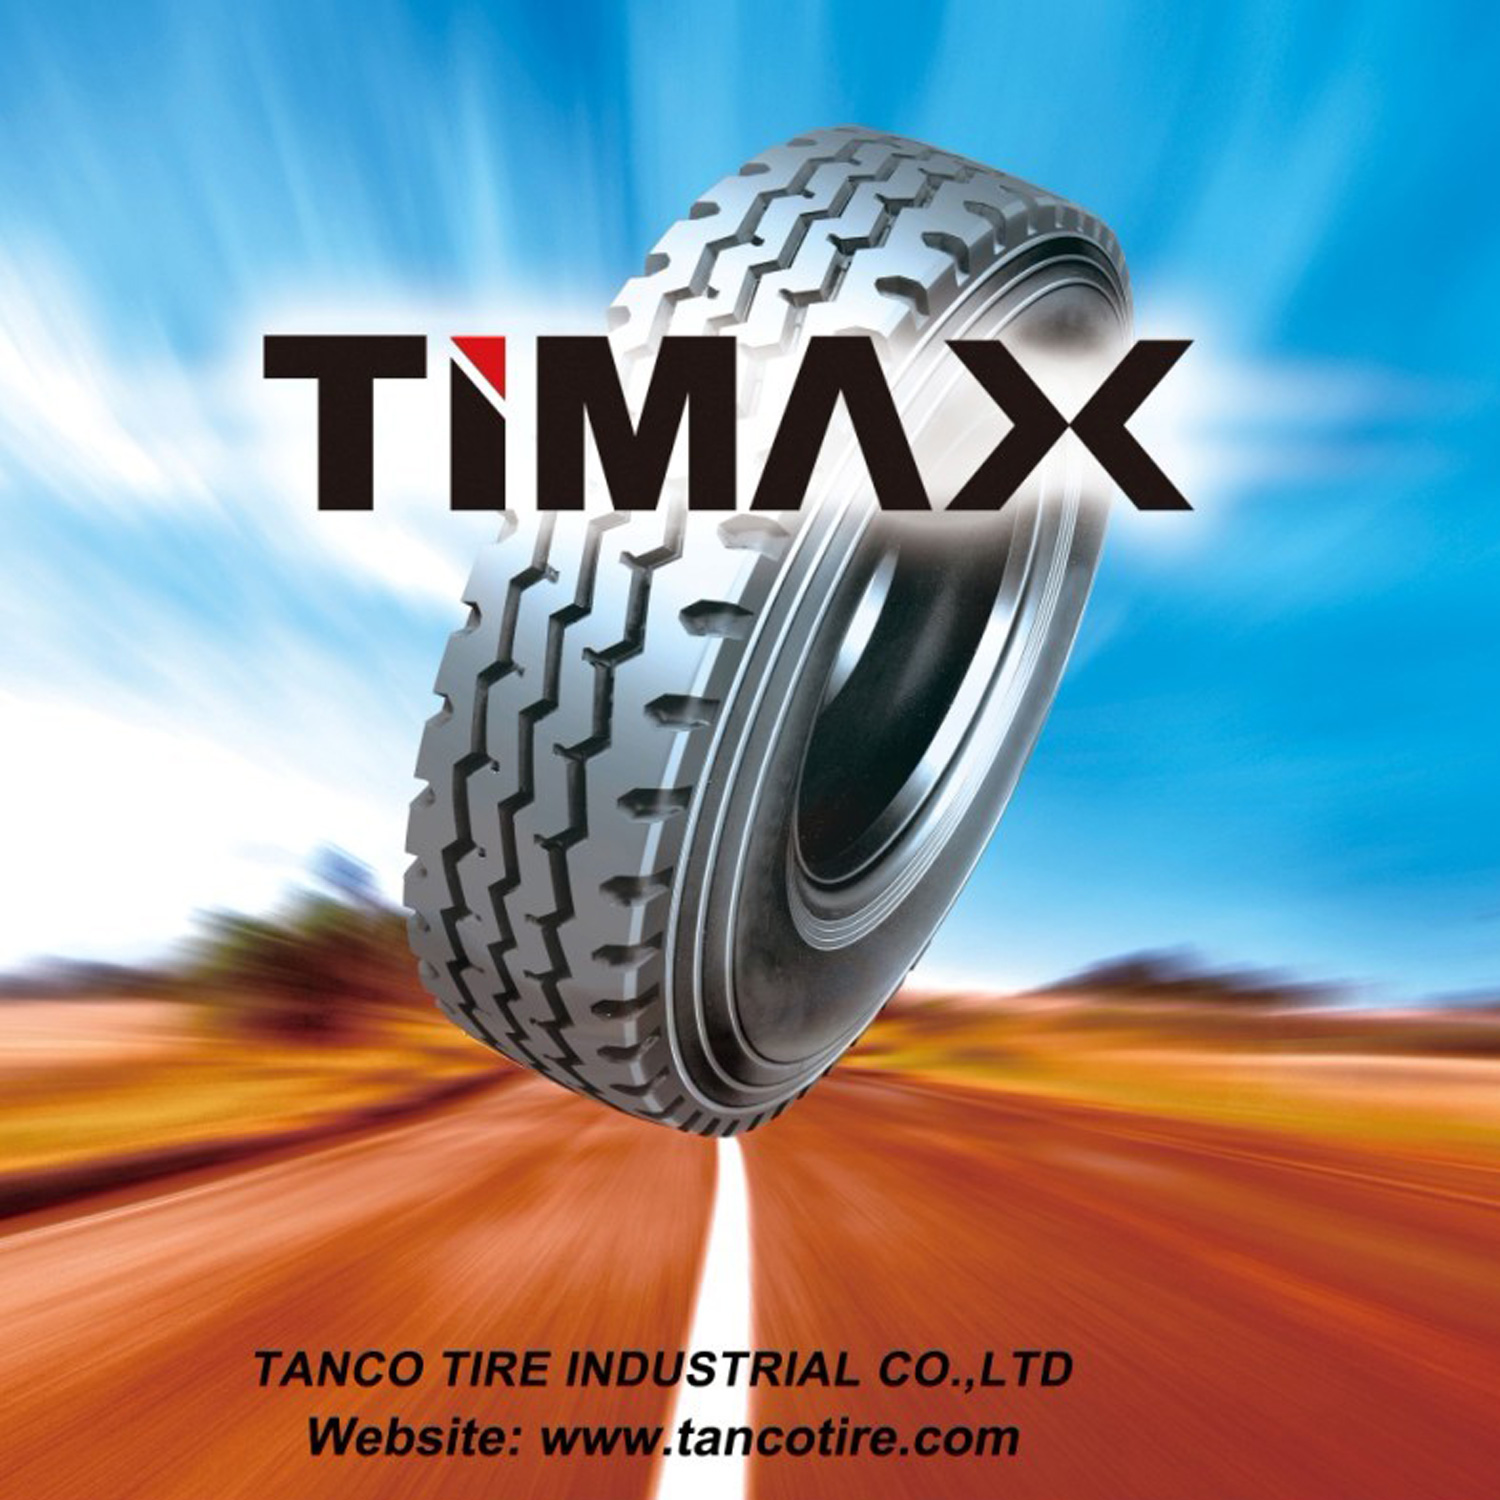 Tanco Tire,Timax Tyre Array image2